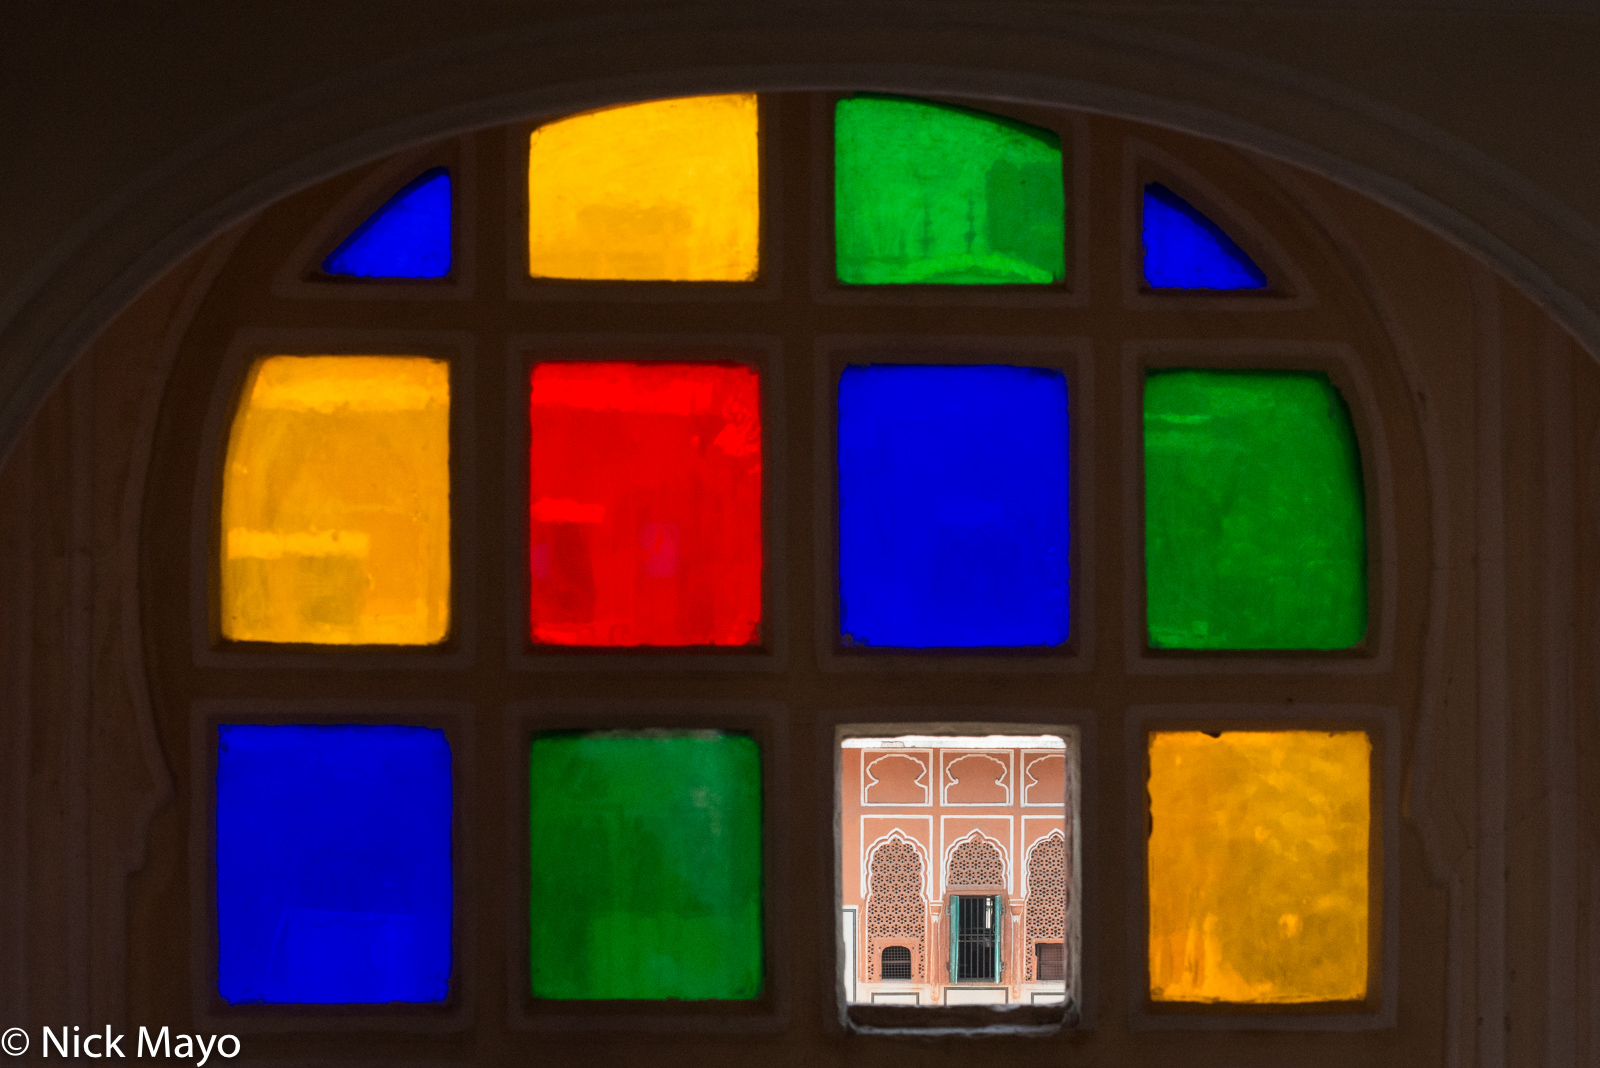 A view through a broken pane of a stained glass window at the Hawa Mahal in Jaipur.